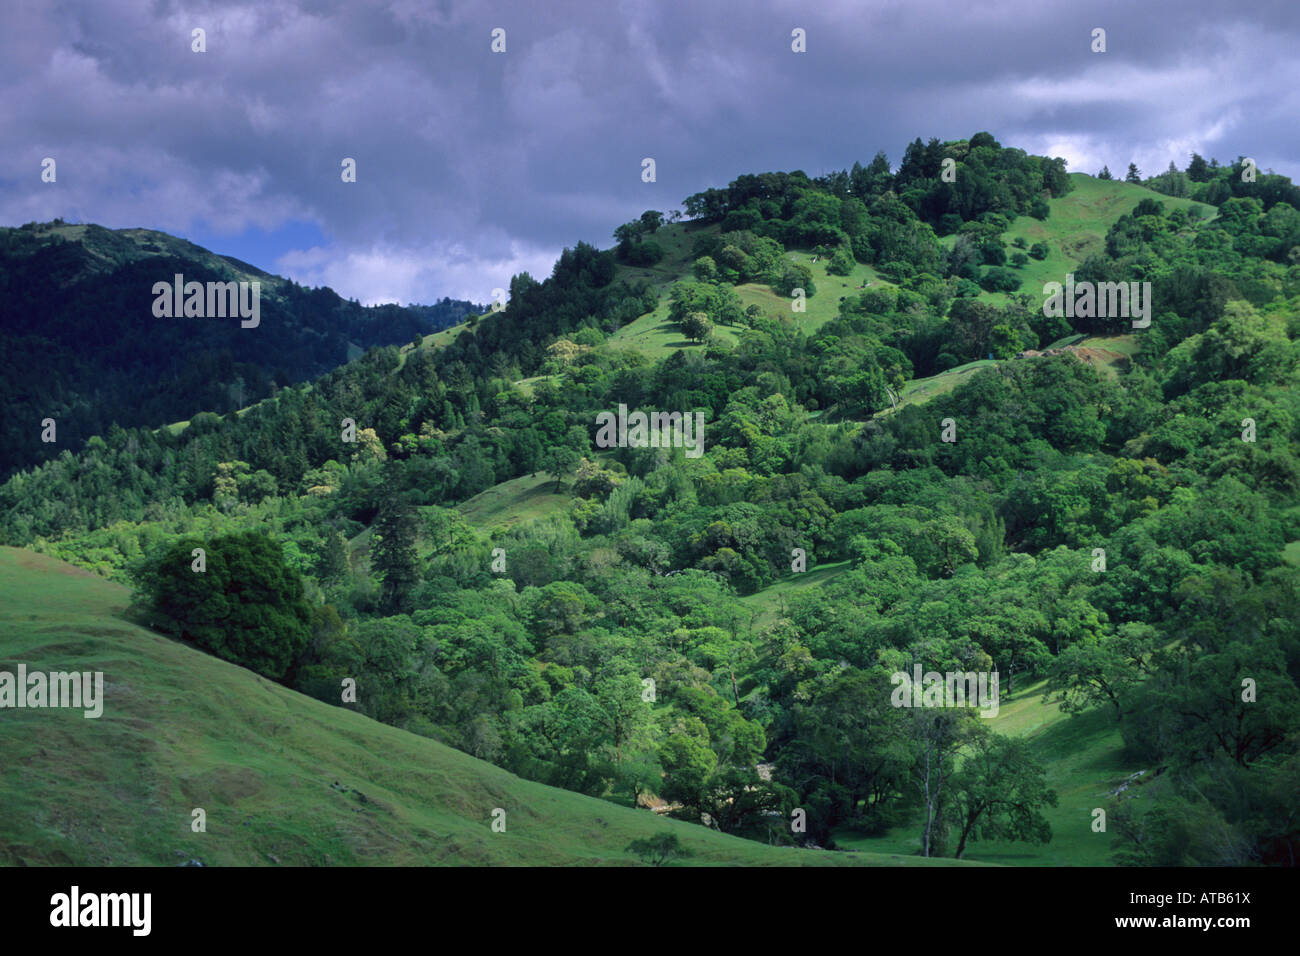 Oak trees and green grass hills in spring near Booneville and the Anderson Valley Mendocino County California - Stock Image